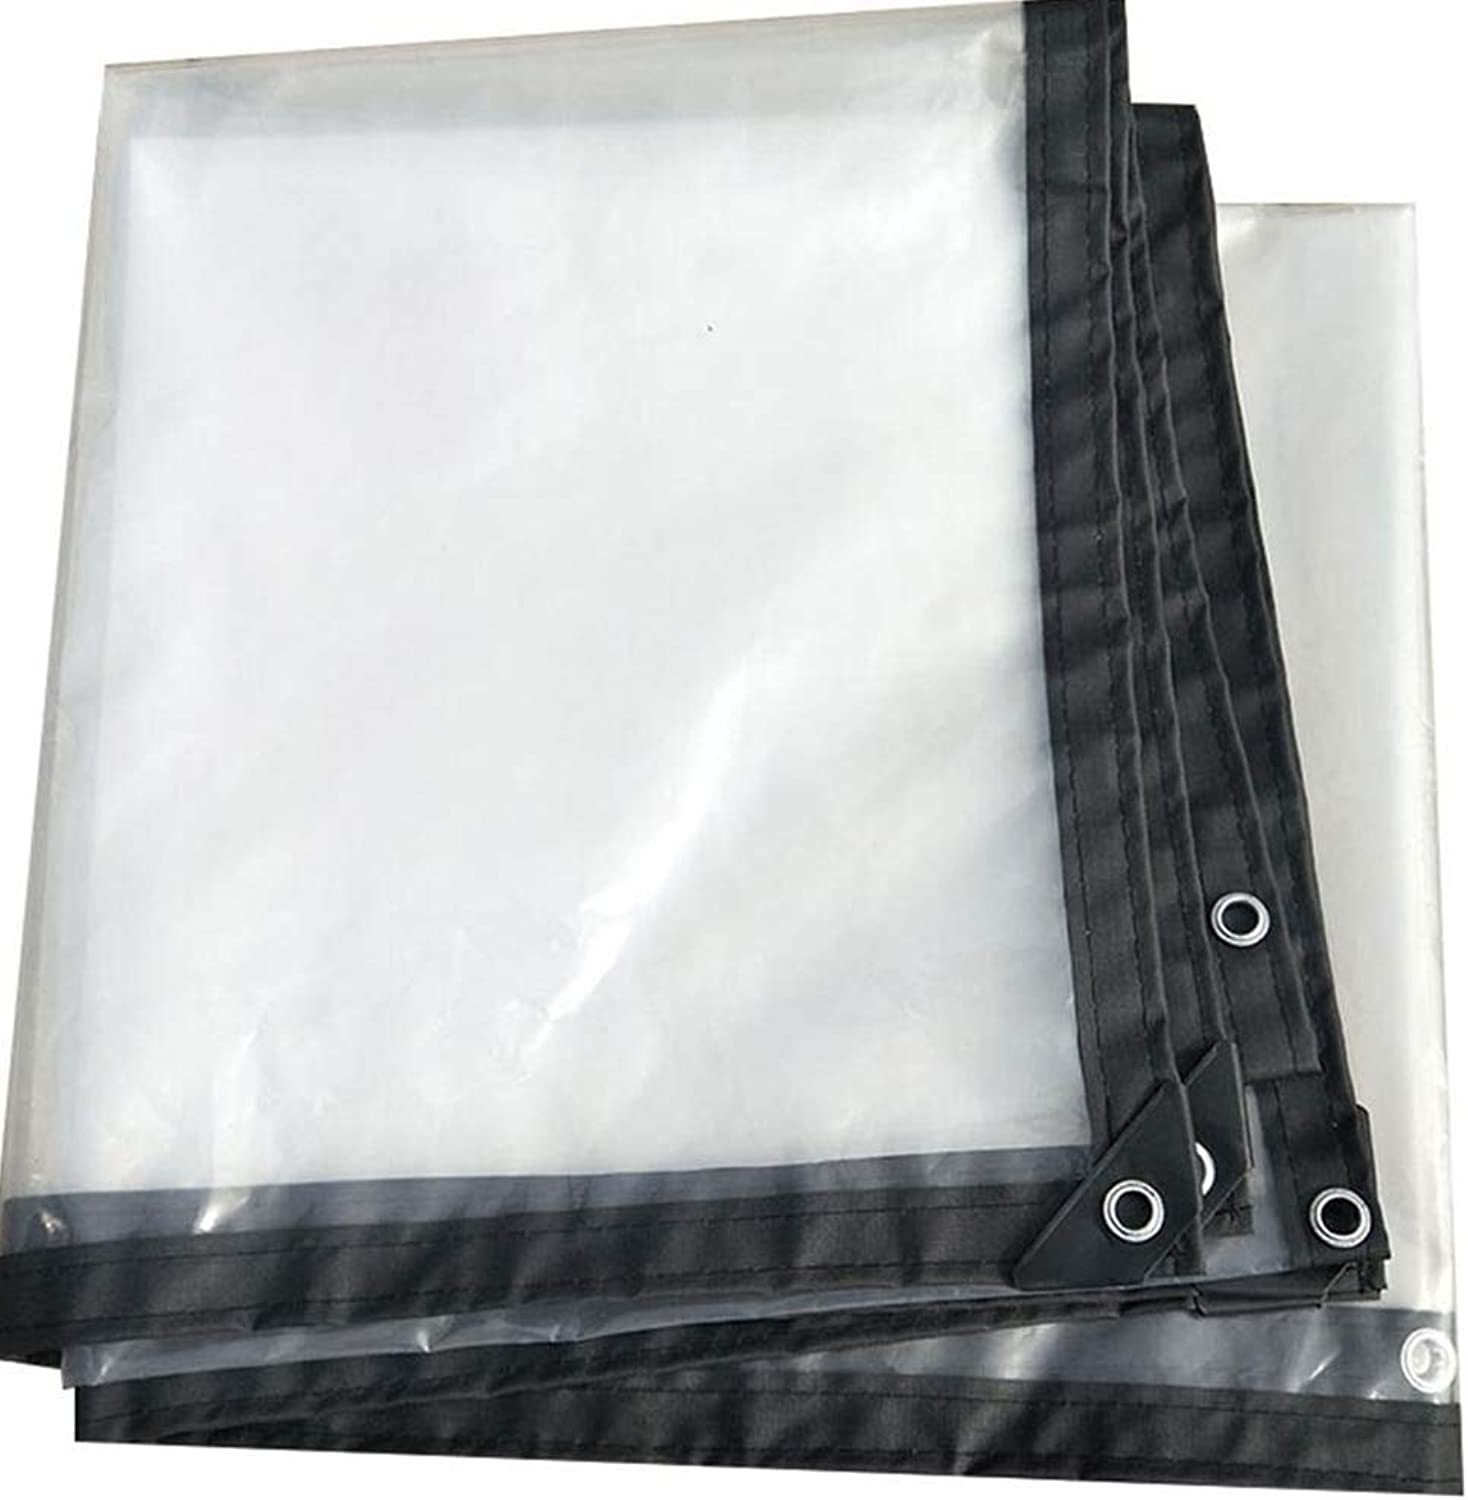 LIANGLIANG Tarpaulin Waterproof Heavy Duty Sheet Outdoor Rainproof Shading Tear Resistance with Metal Hole Eye Plastic PE, 24 Sizes (color   Clear, Size   2x4m)